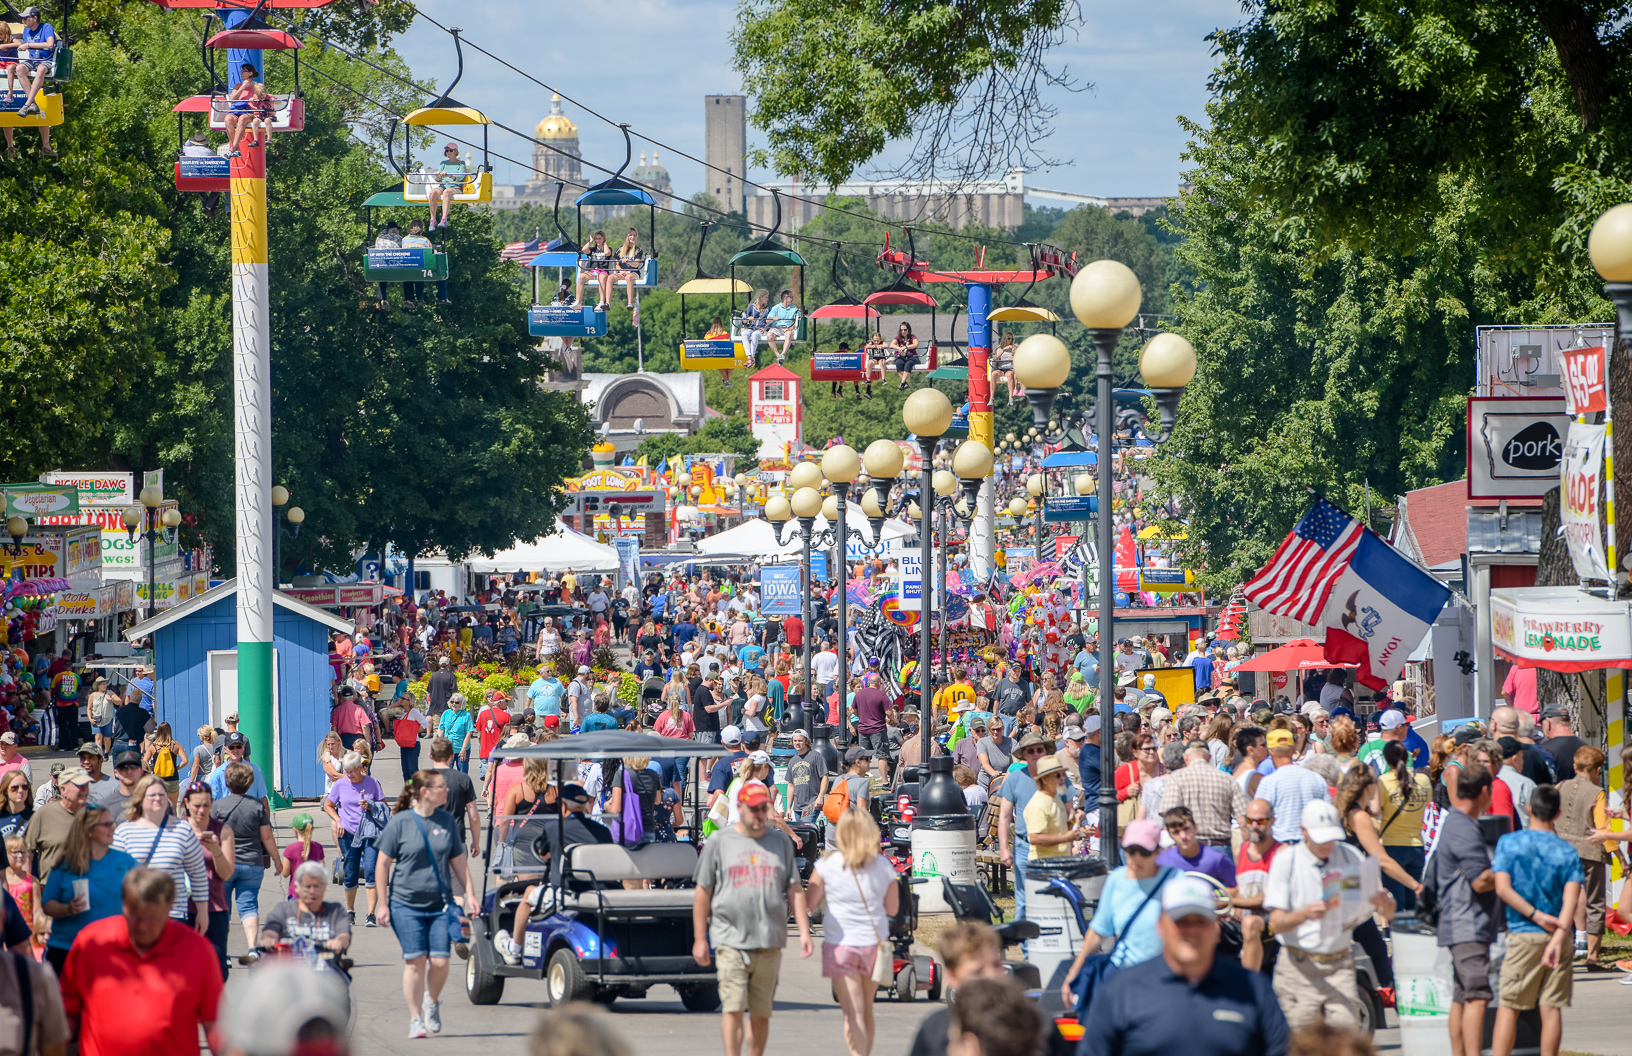 The Iowa State Fair attendance set a record of 1.17 million people. Photo credit: Joseph L. Murphy/Iowa Soybean Association